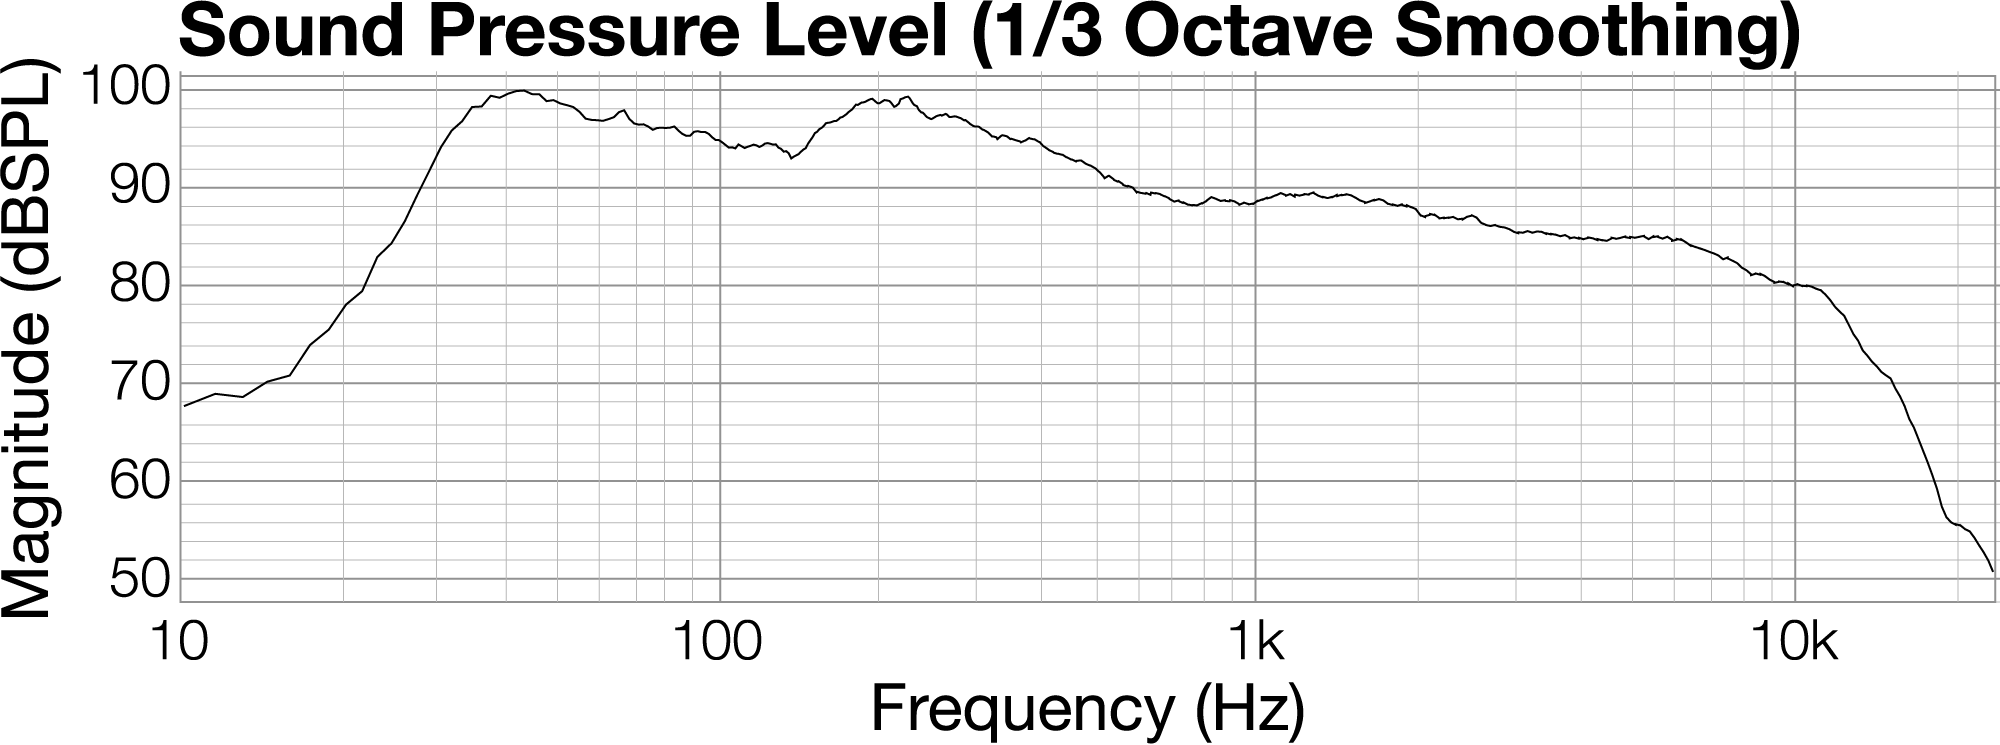 824 Live Sound Digital Music Figure 2 Power Amplifier Frequency Response 834 Graph Showing A Low Boost